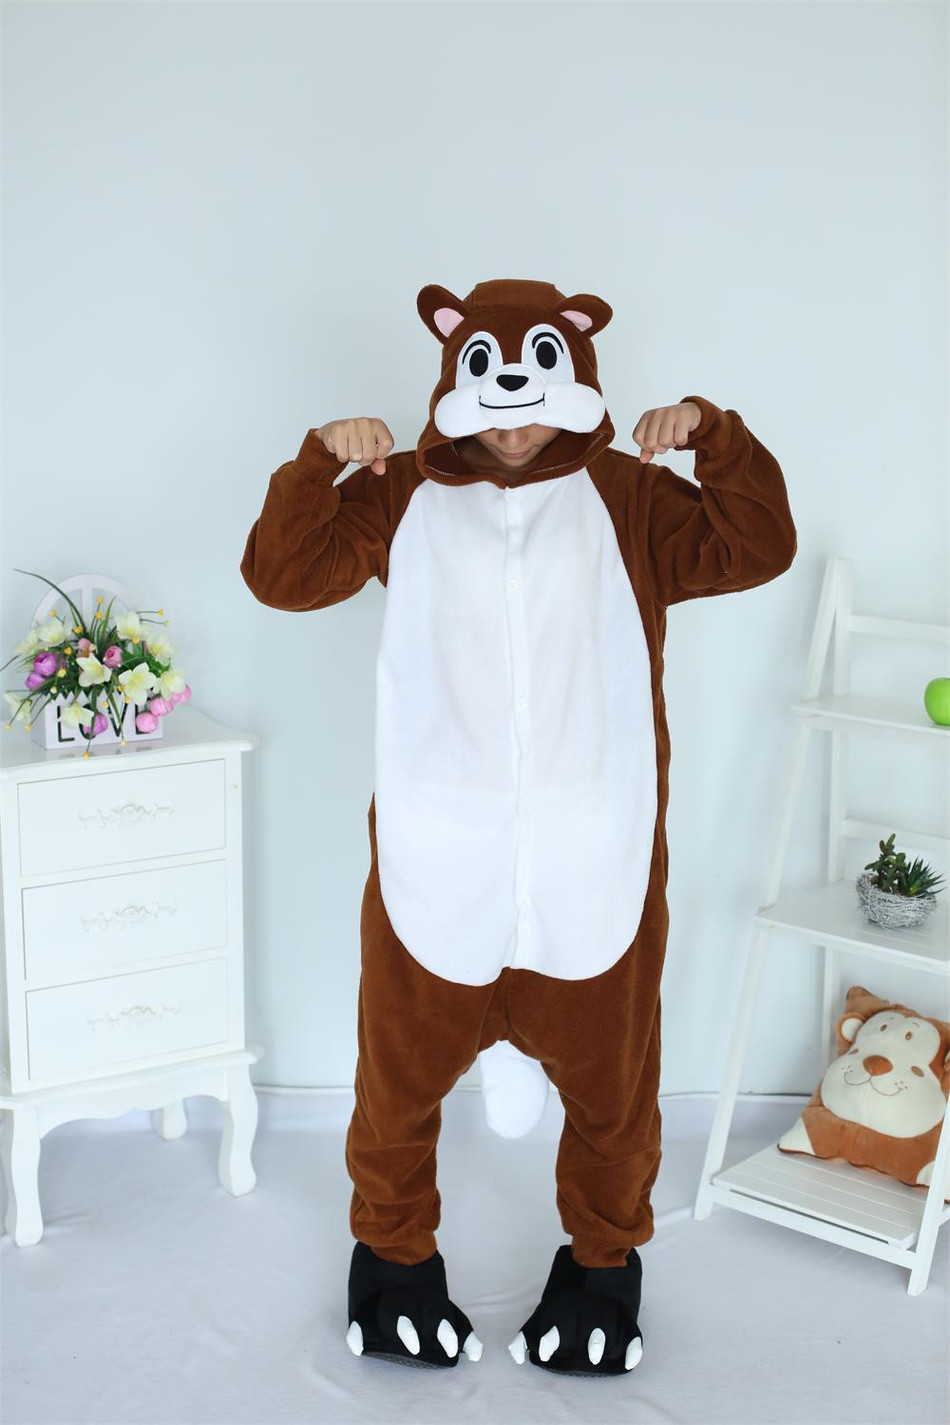 Cartoon Unisex Animal Adult Chipmunk Onesie Pajamas Sleepsuit Sleepwear Anime Cosplay Costume Unisex Fashion